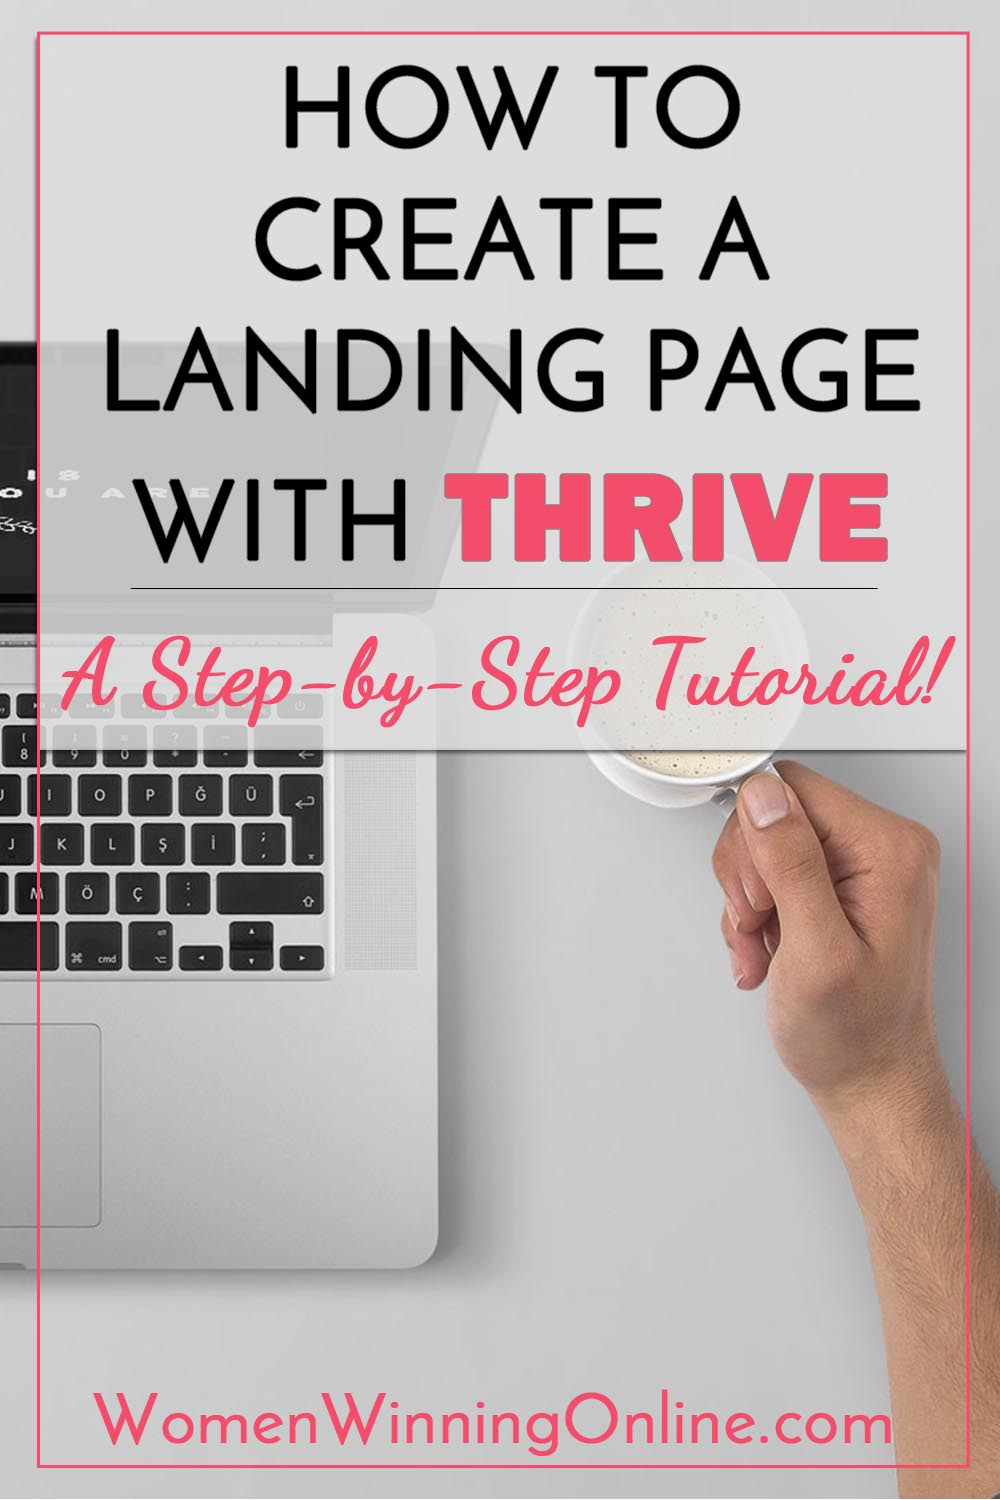 How to Create a Landing Page with Thrive: A Step-by-Step Tutorial